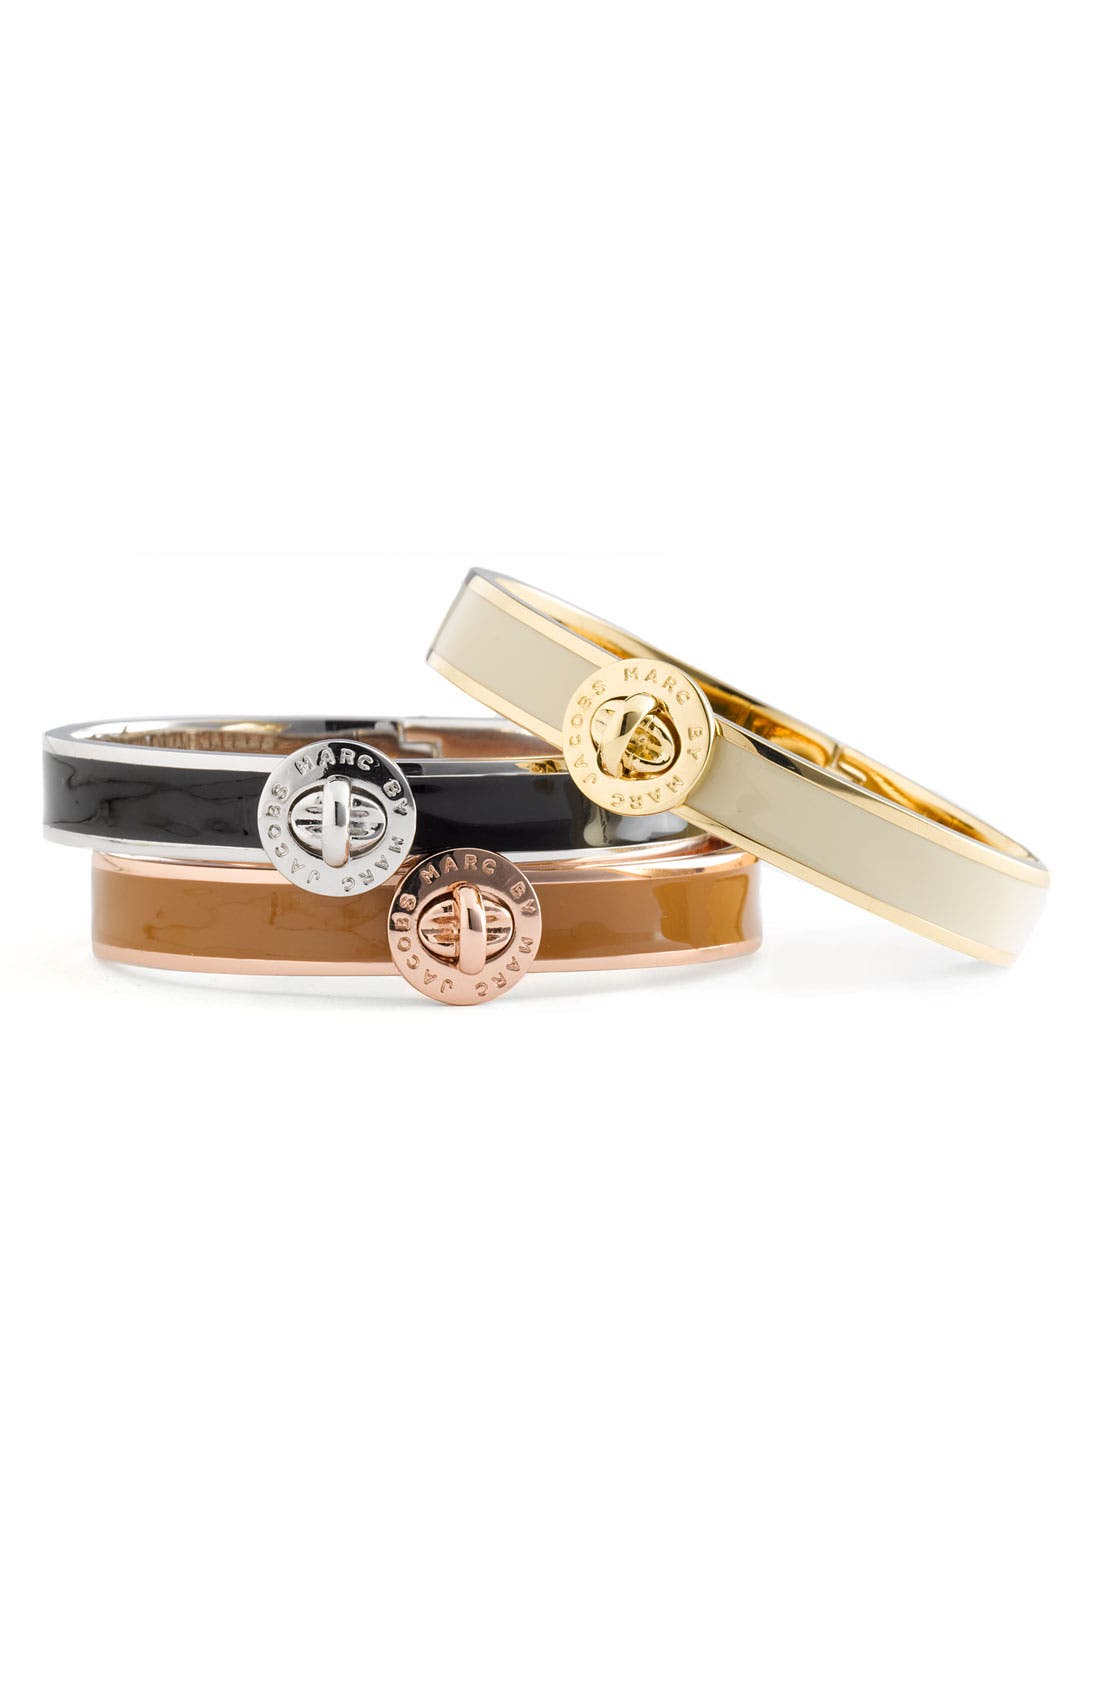 Main Image - MARC BY MARC JACOBS 'Turnlock' Hinged Bangle